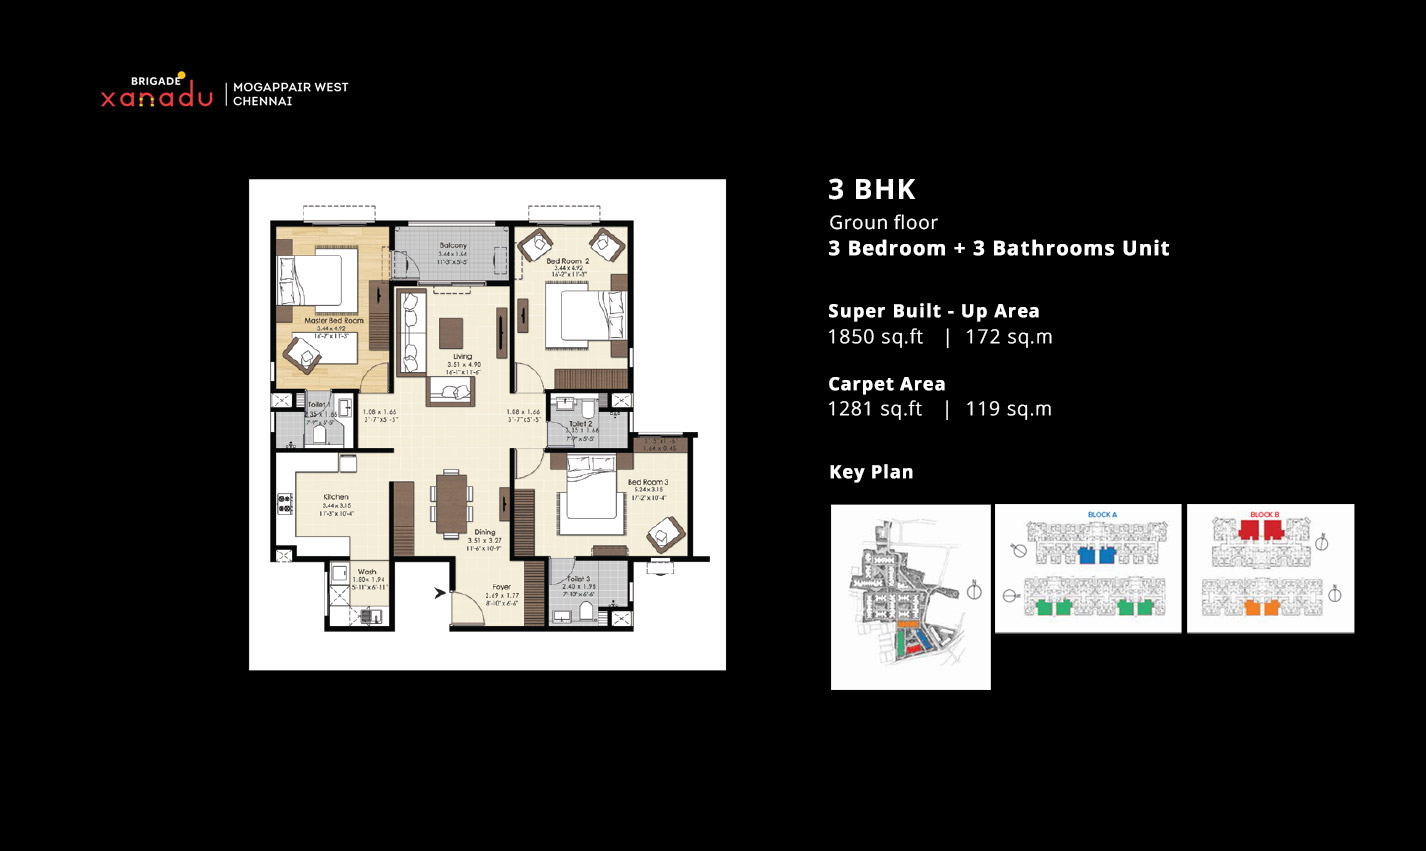 brigade-xanadu-2-bhk-floor-plan-mogappair-west